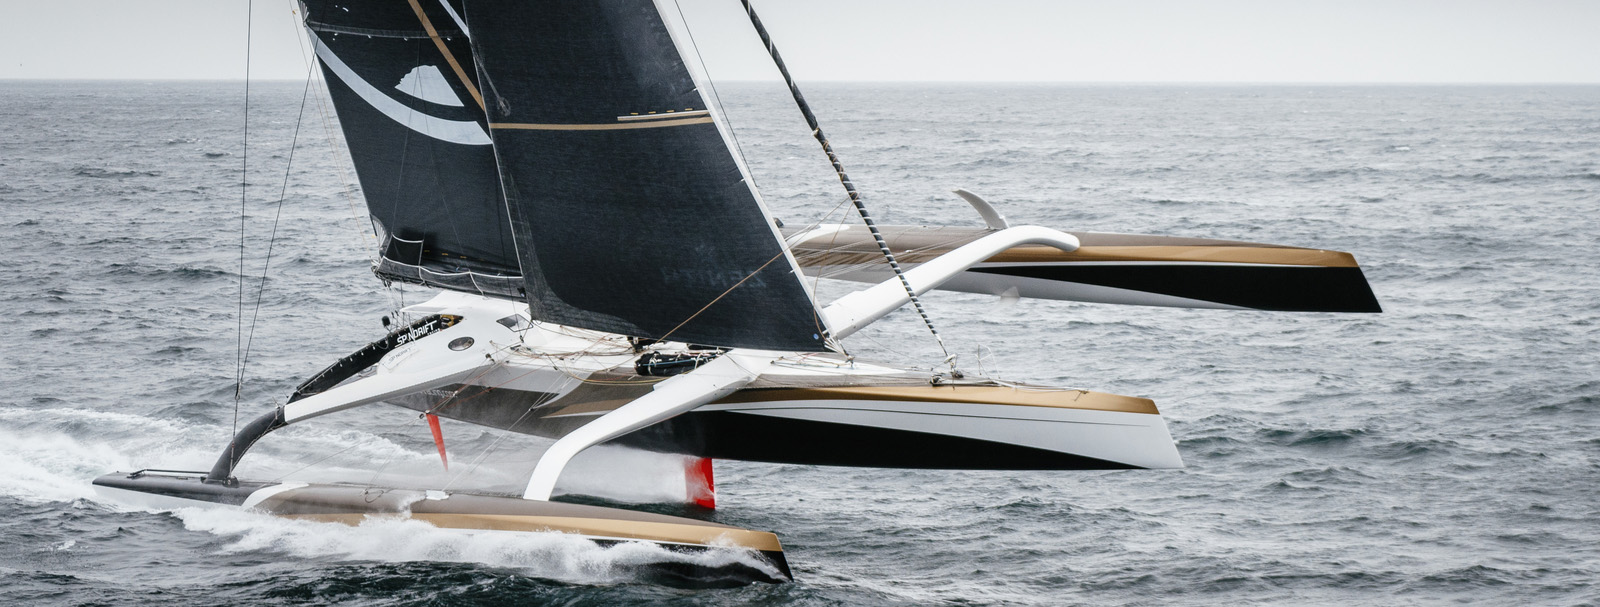 Spindrift Racing - off on a new Jules Verne attempt - Chris Schmid pic